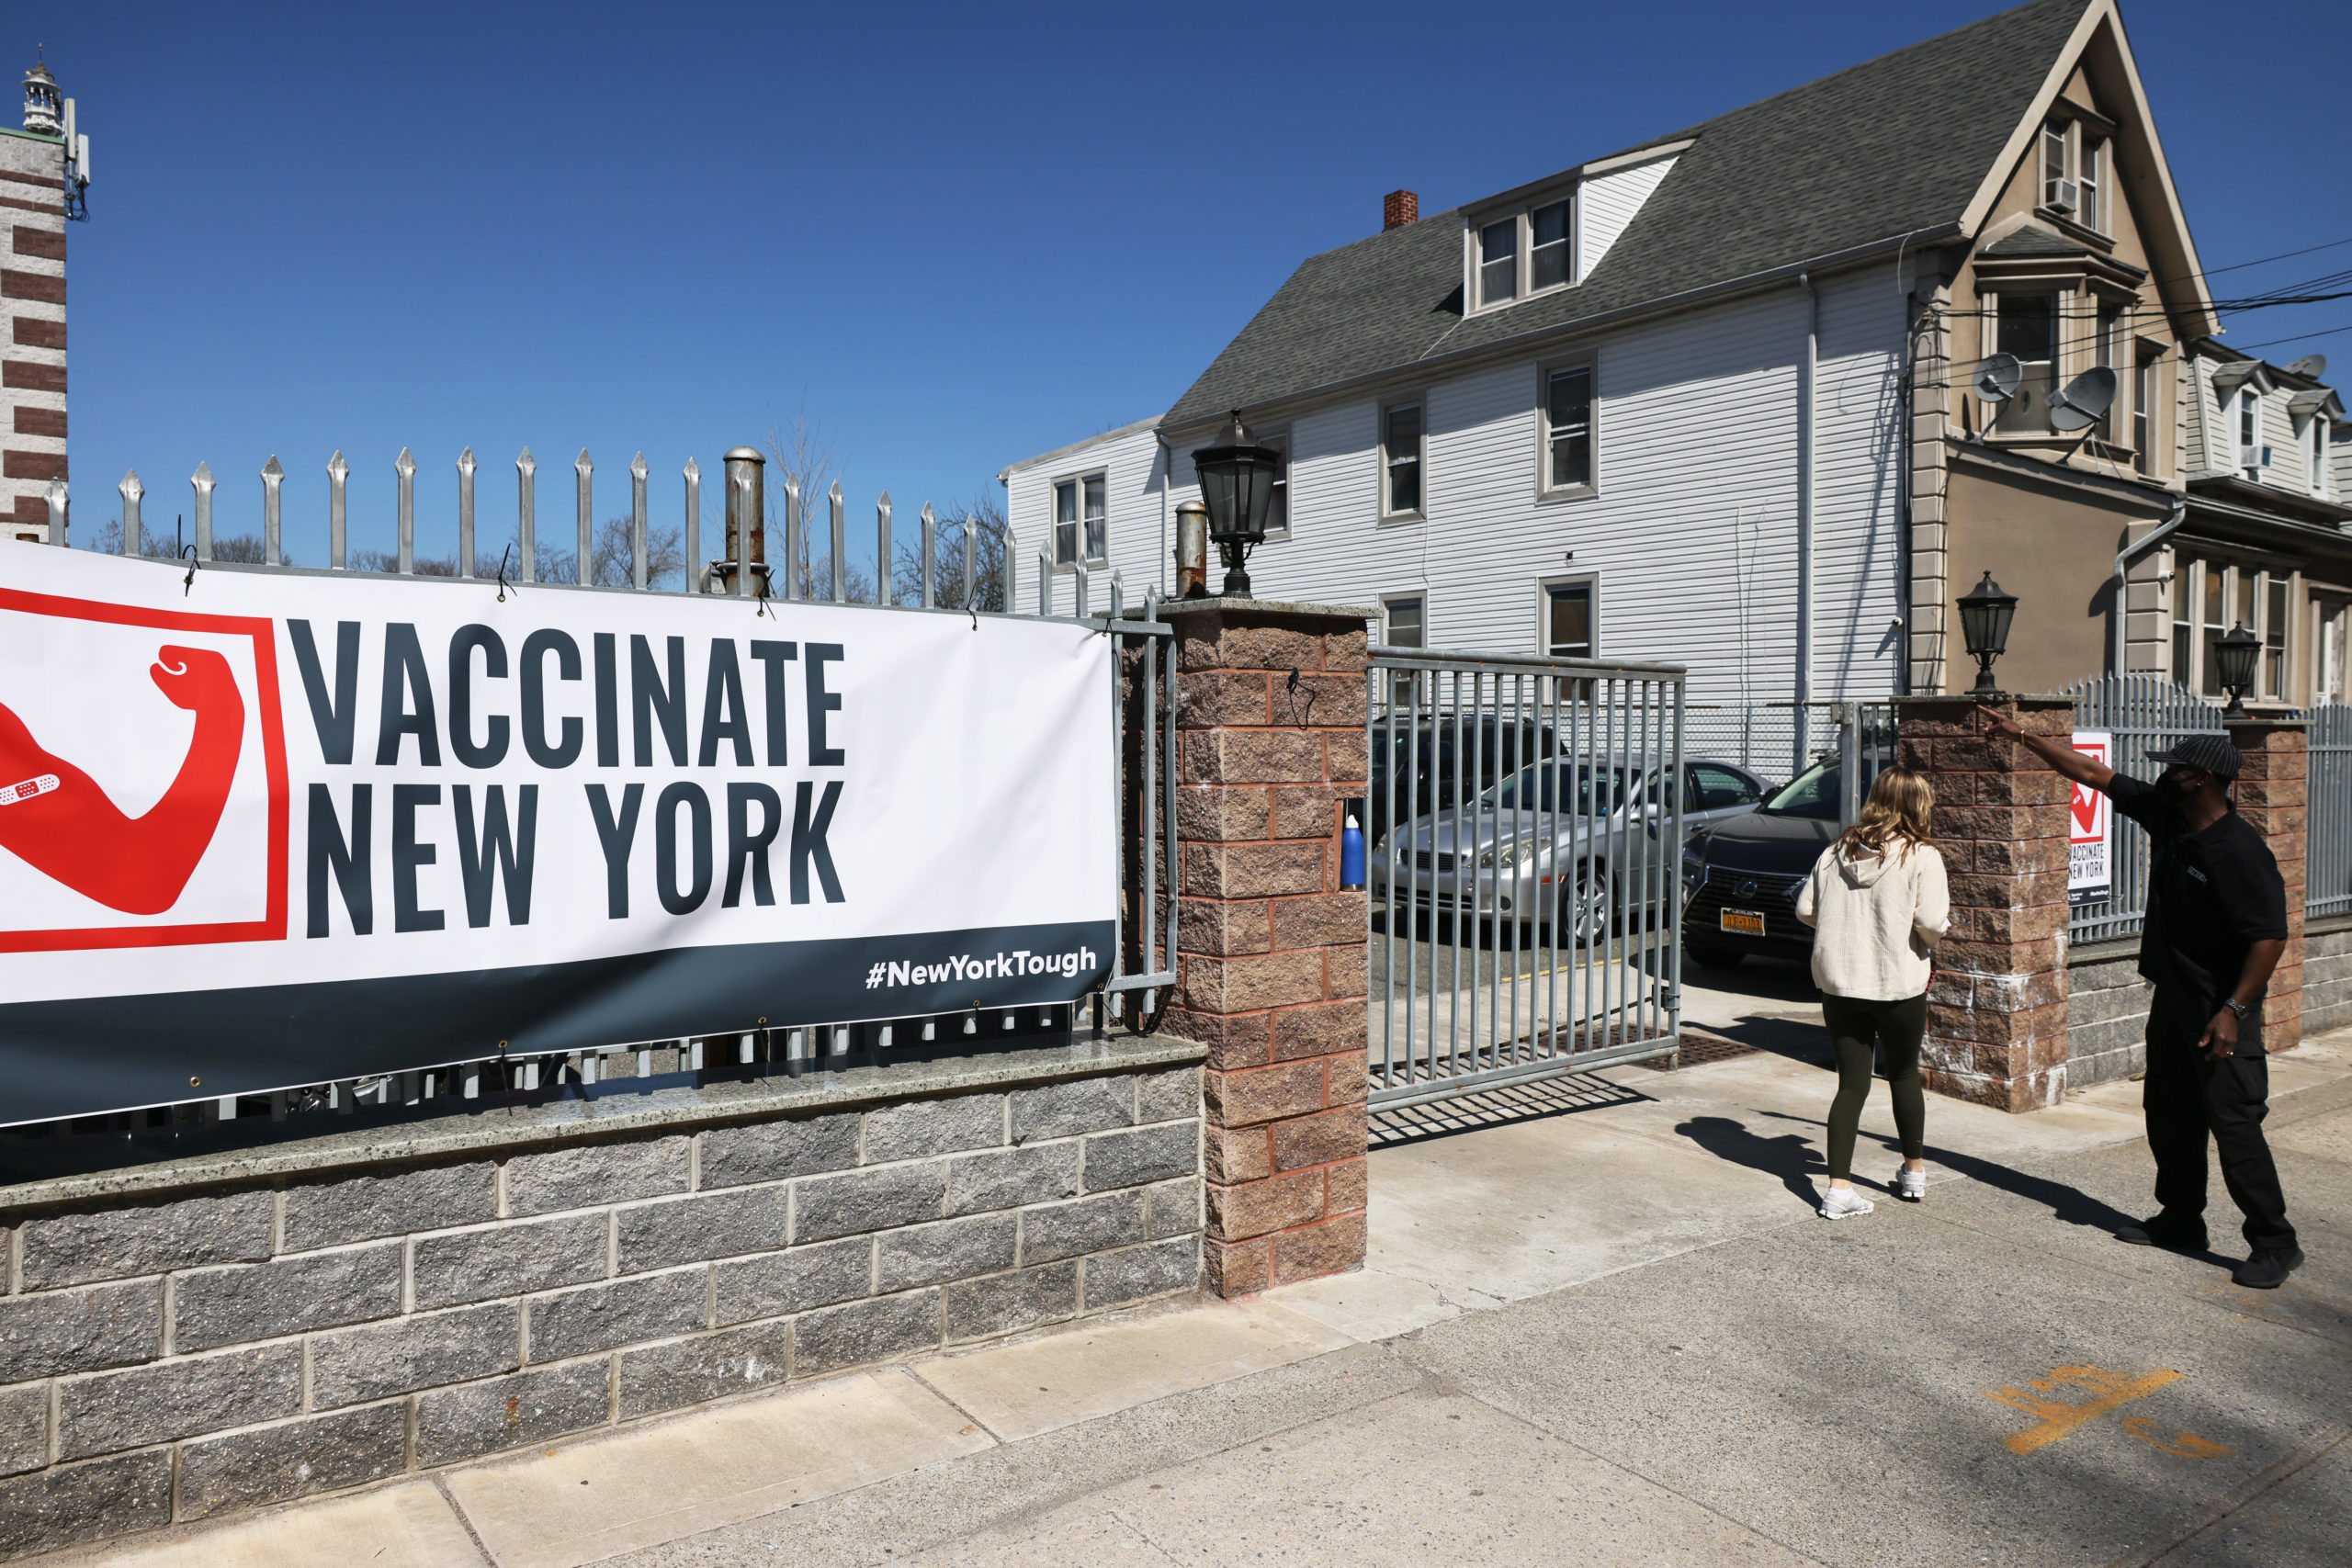 A security guard gives directions to enter the Northwell Health pop-up coronavirus (COVID-19) vaccination site at the Albanian Islamic Cultural Center in Staten Island on April 08, 2021 in New York City. NYC continues to have a 6.55 percent coronavirus (COVID-19) cases on a seven-day rolling average as the city continues to ramp up vaccinations. The city last week set a record of 524,520 coronavirus (COVID-19) vaccinations. (Photo by Michael M. Santiago/Getty Images)